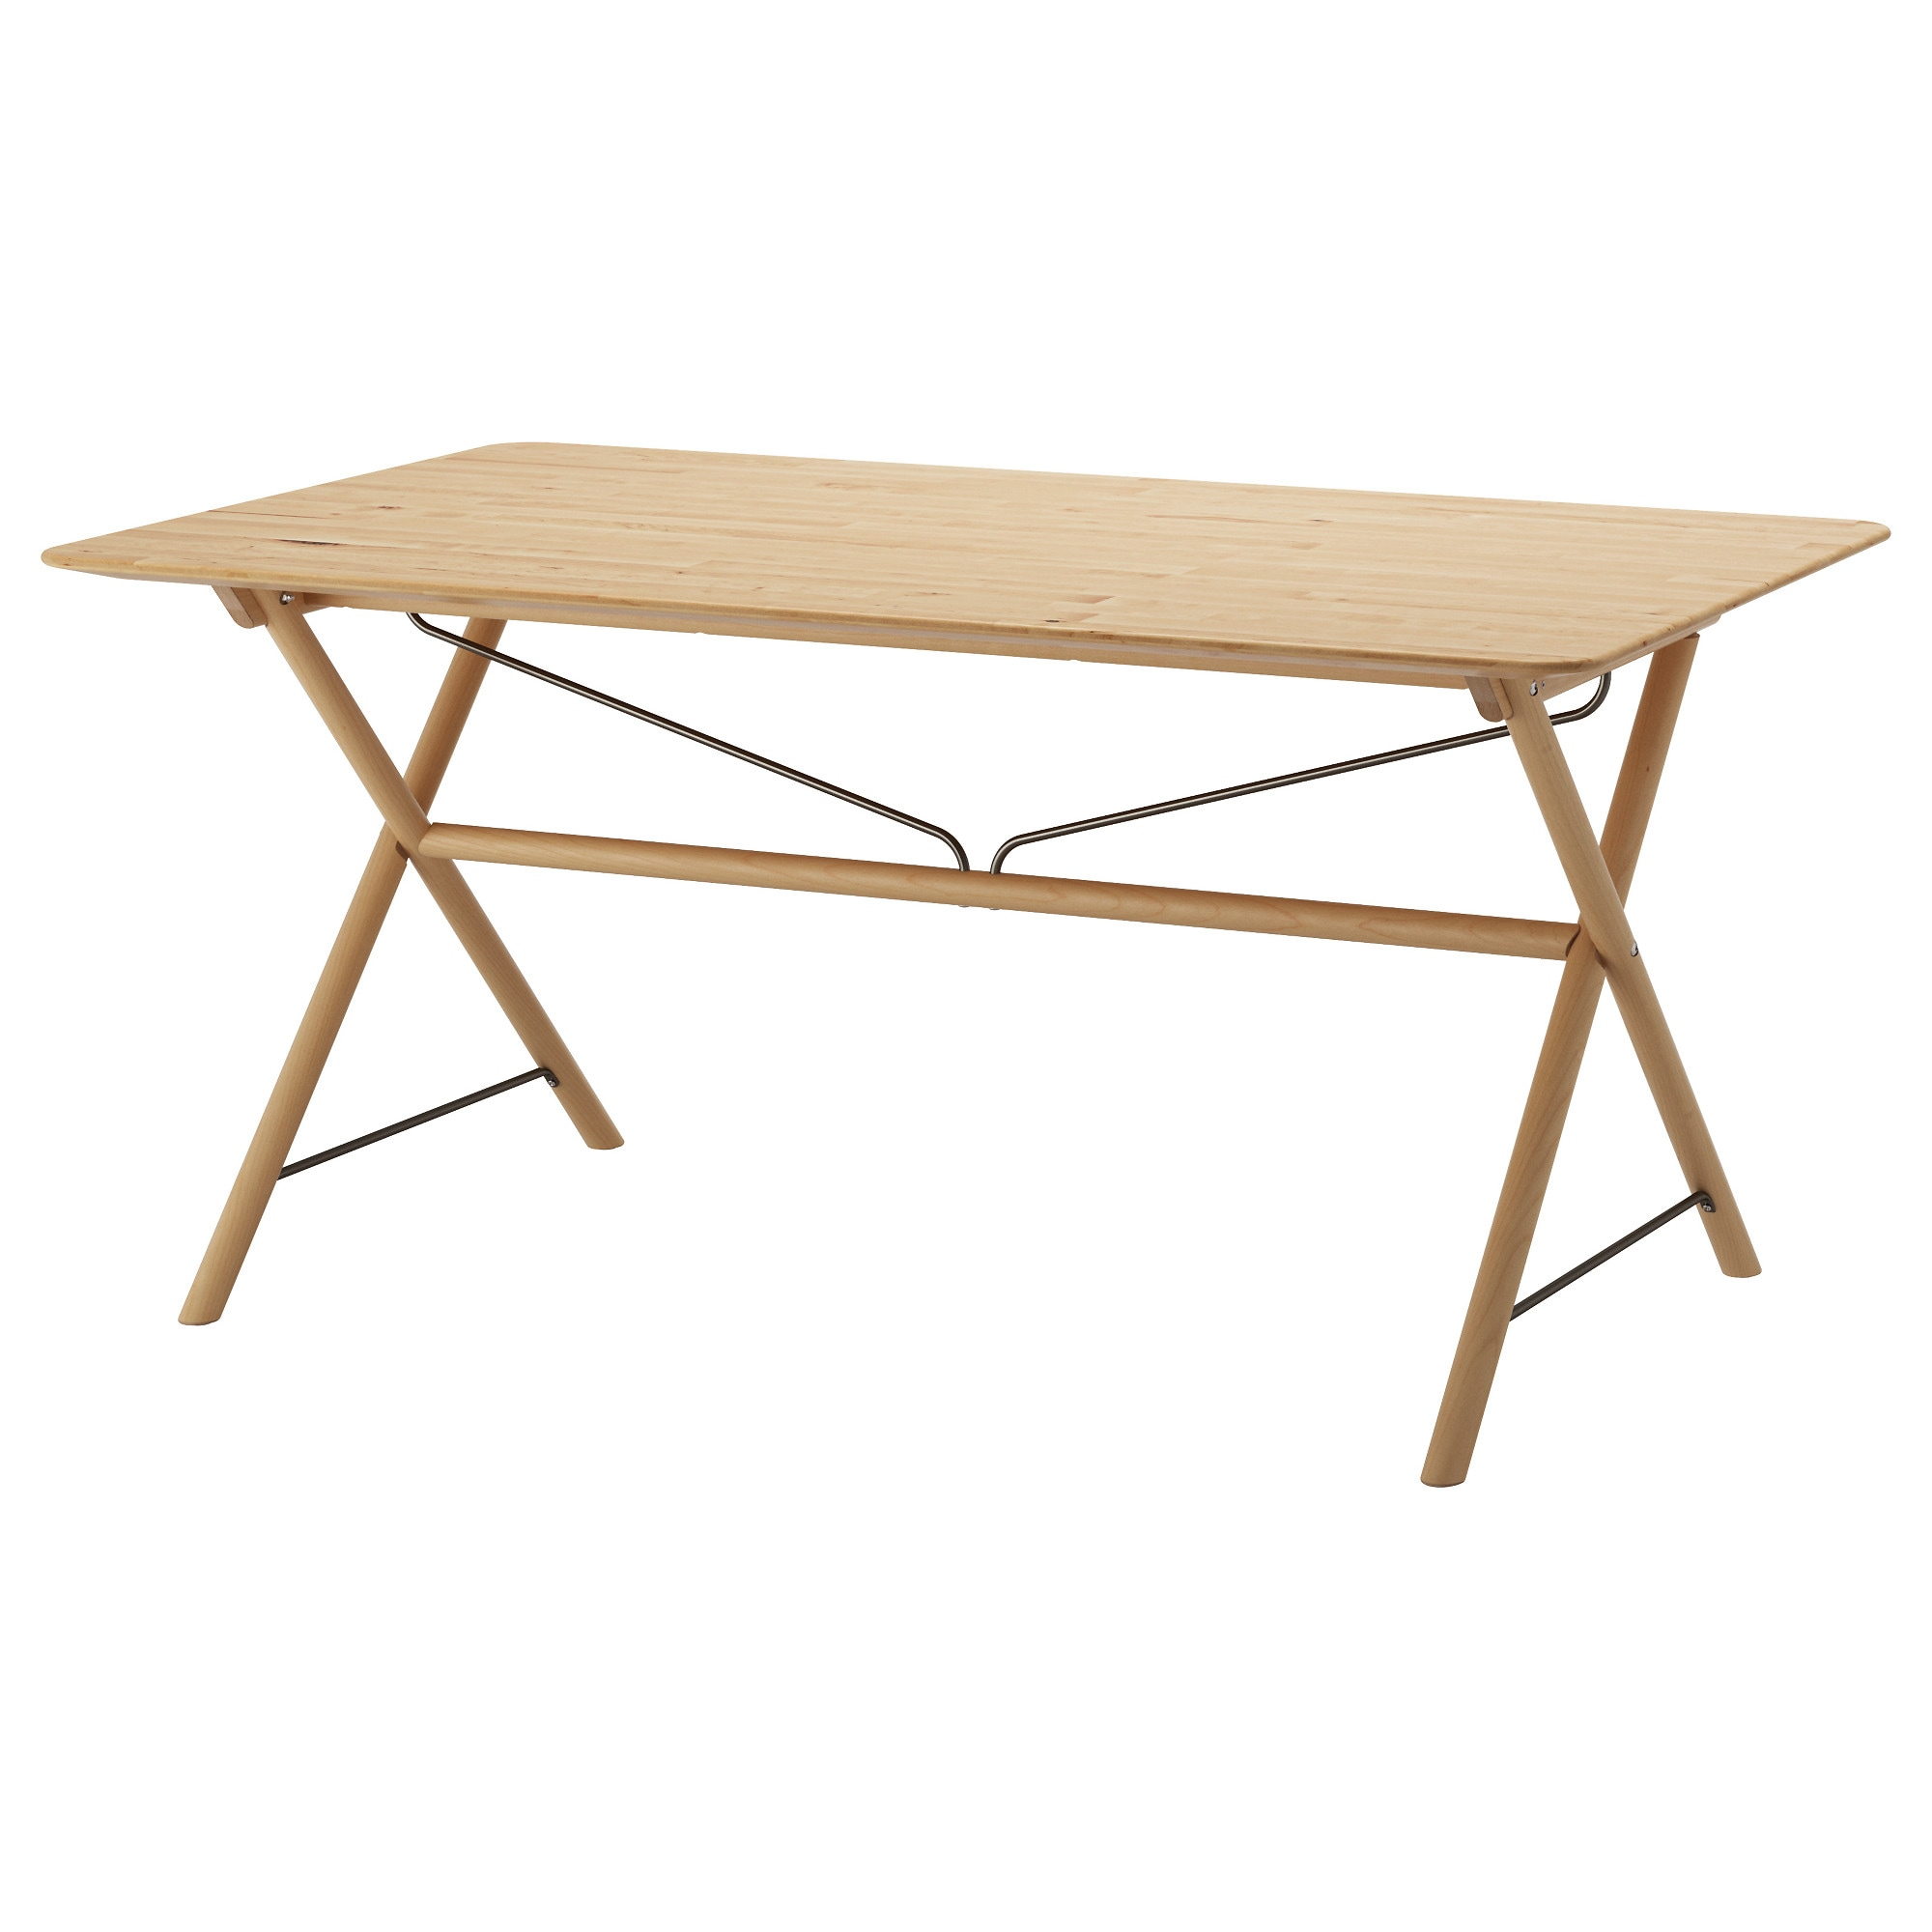 Table carree 8 personnes ikea 28 images table 8 for Table exterieure carree 8 personnes